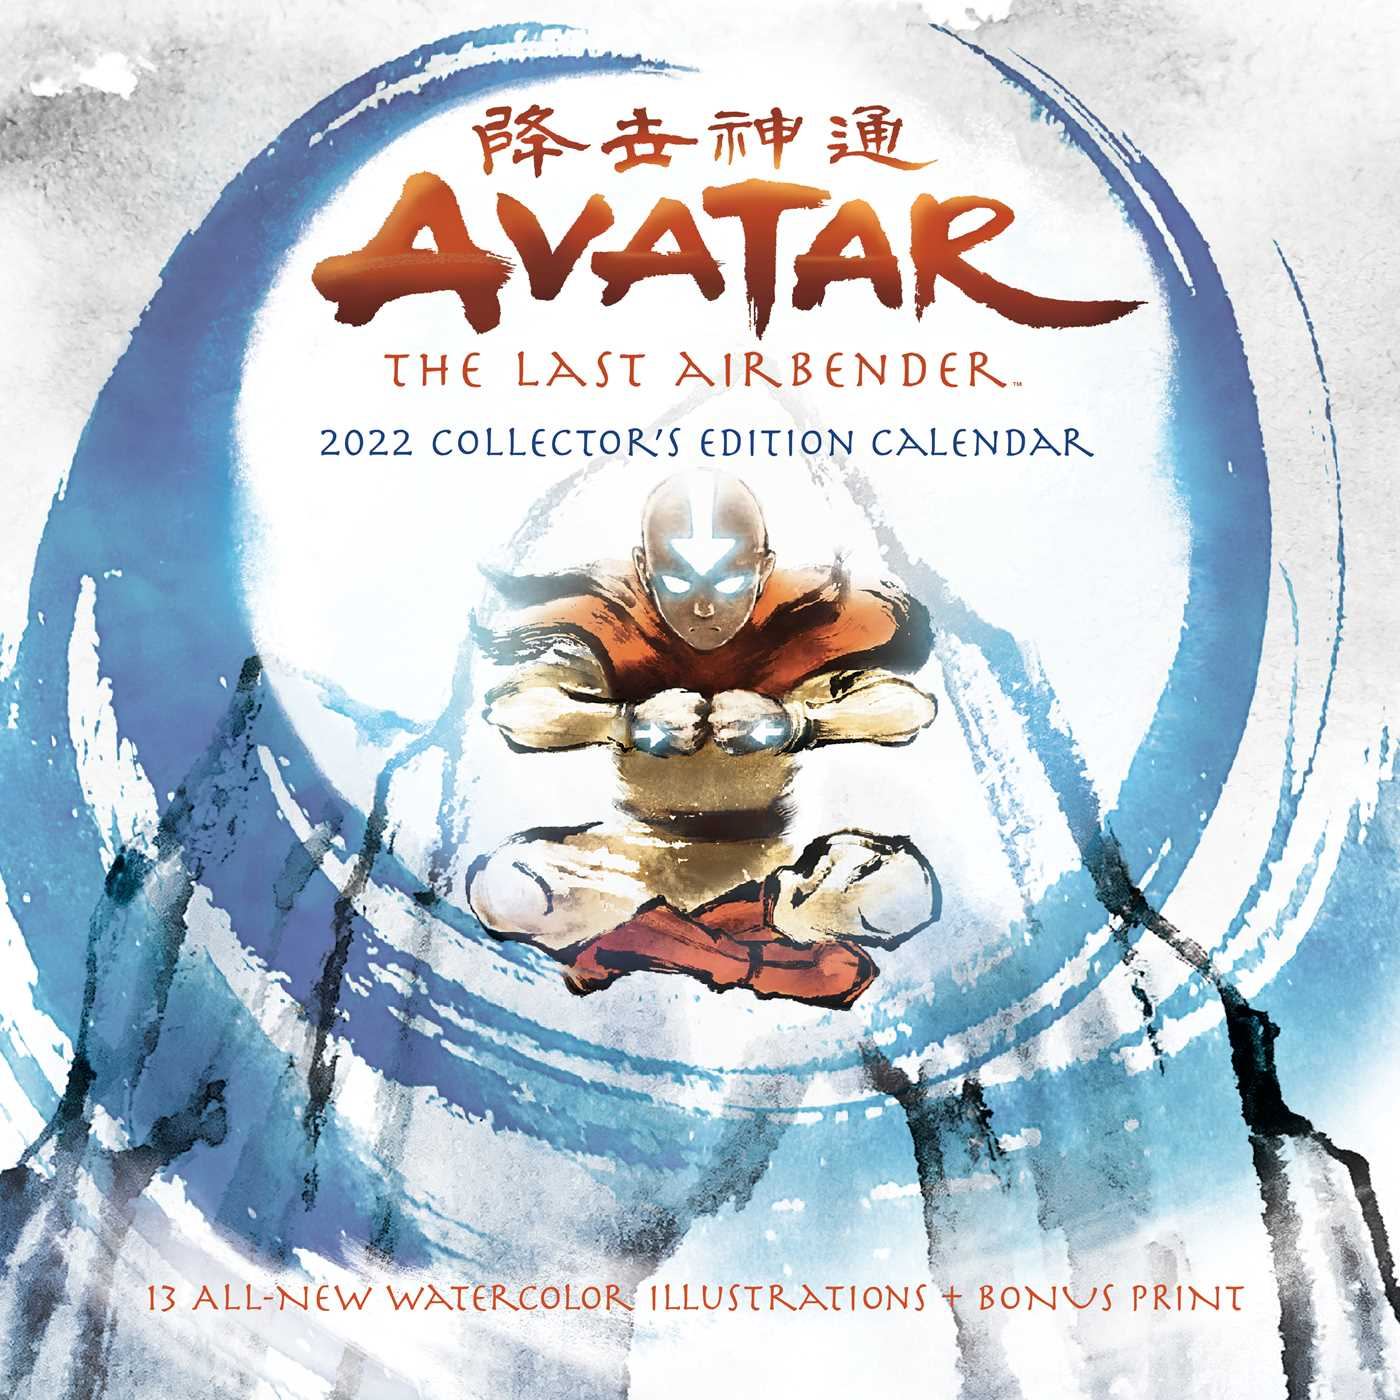 Uofa Calendar 2022.Avatar The Last Airbender 2022 Collector S Edition Wall Calendar Book Summary Video Official Publisher Page Simon Schuster Canada